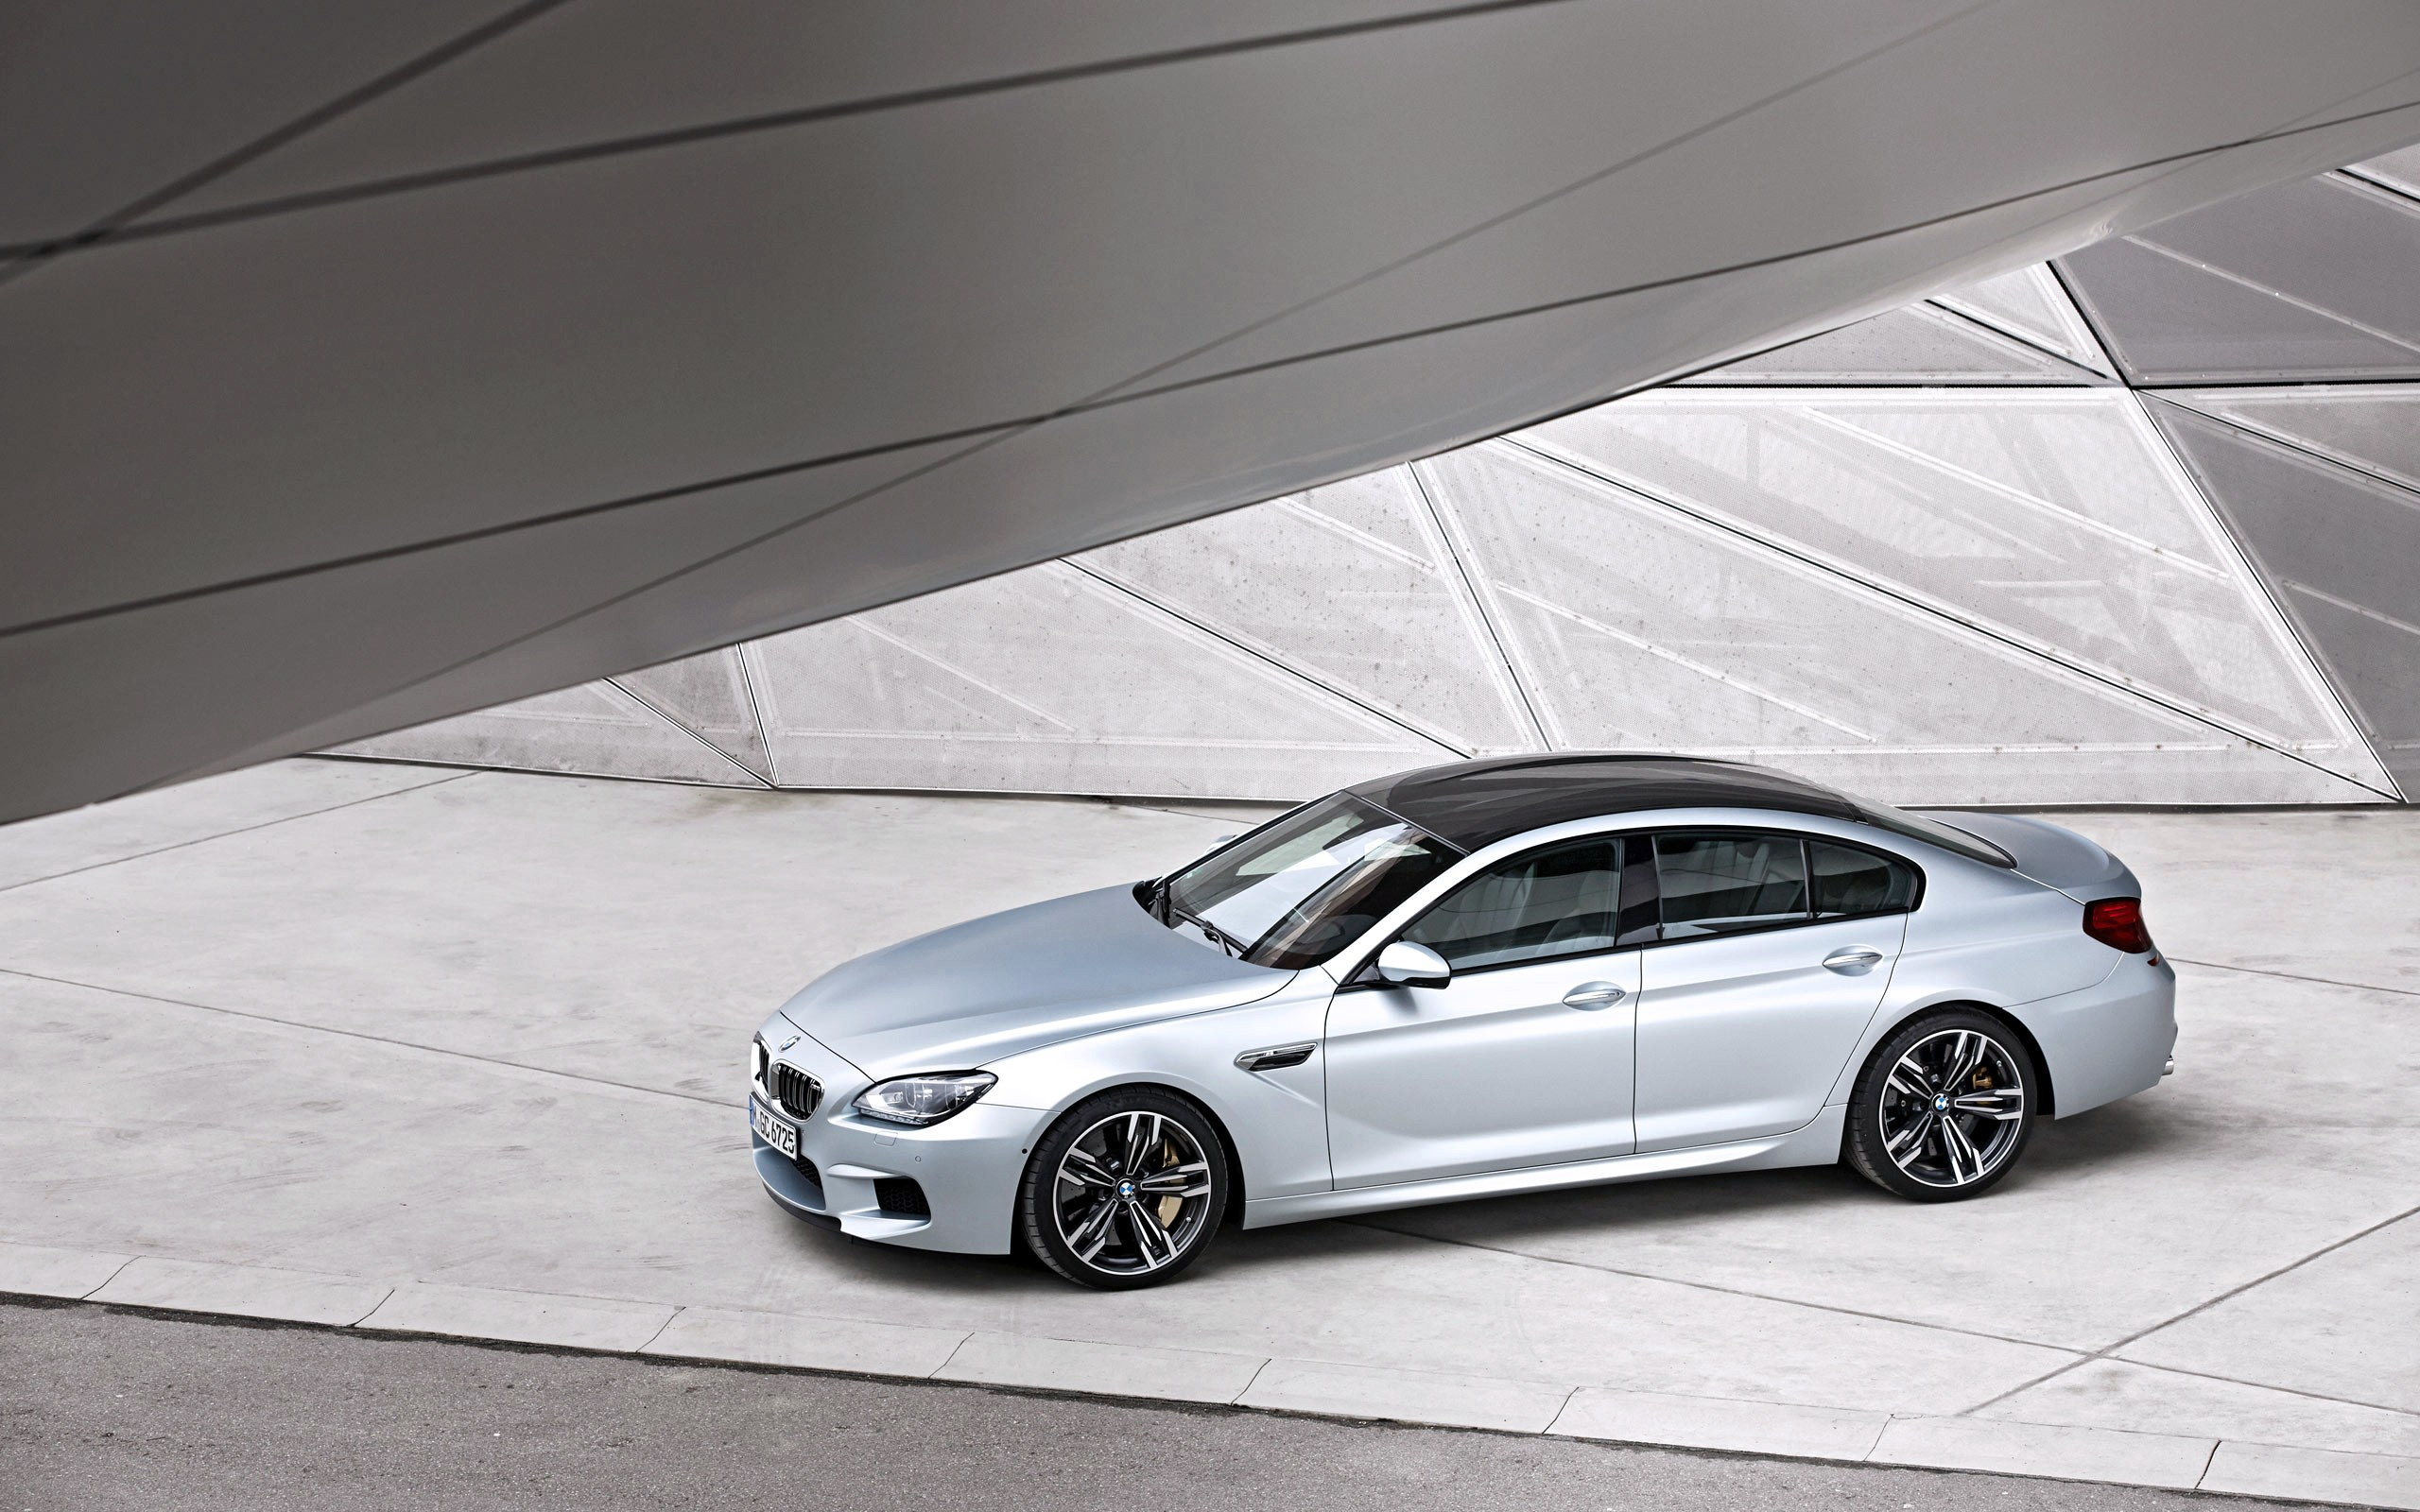 Daily Wallpaper Bmw M6 Gran Coupe I Like To Waste My Time